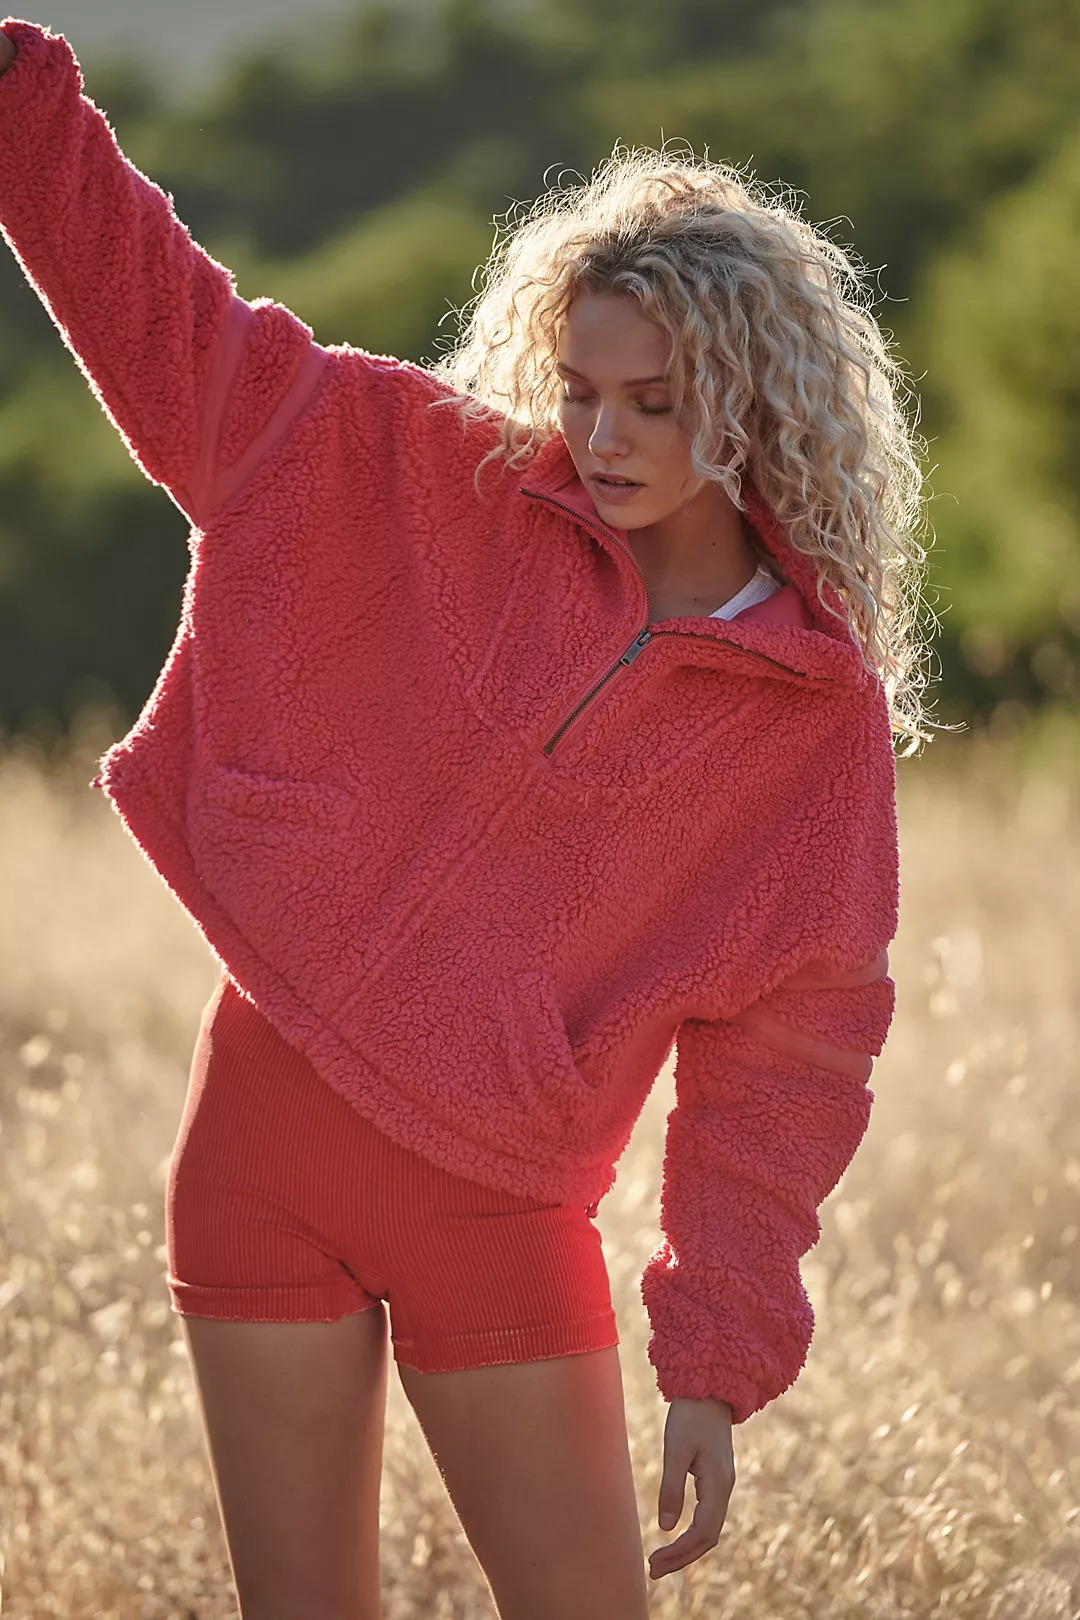 Red fleece with red bike shorts